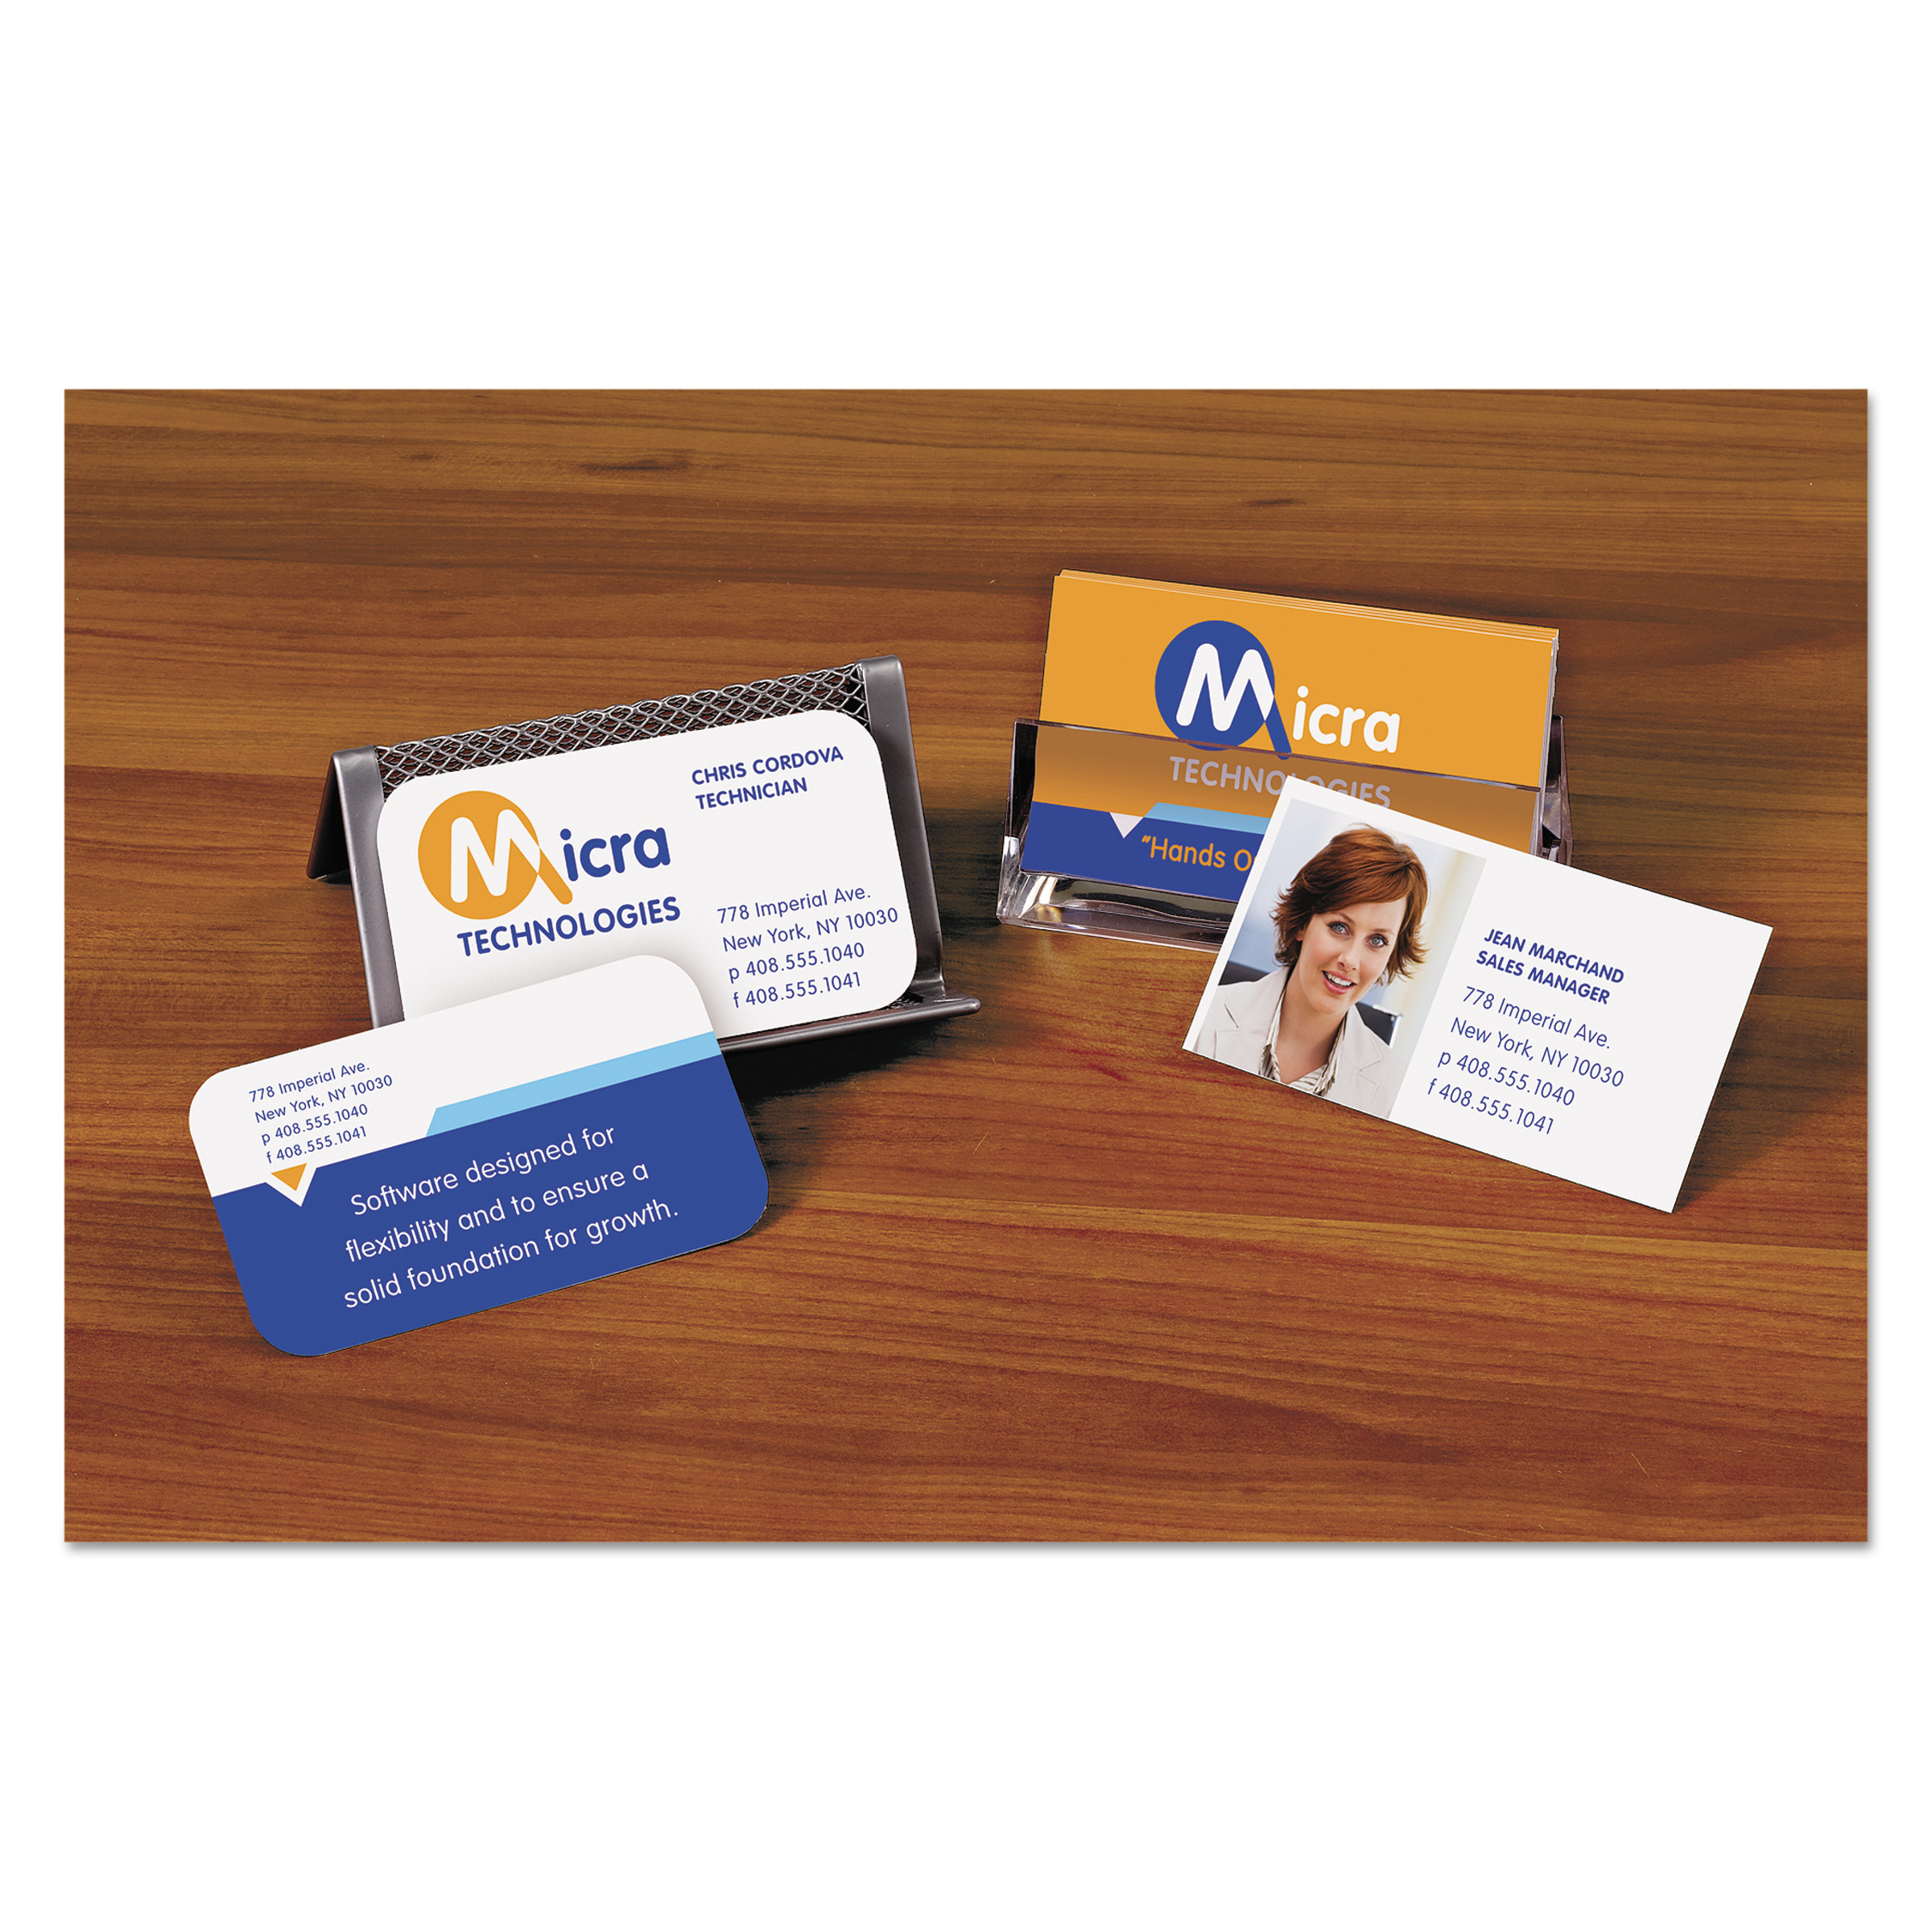 Avery round corner print to the edge business cards inkjet 2 x 3 1 avery round corner print to the edge business cards inkjet 2 x 3 12 ivory 160pk walmart reheart